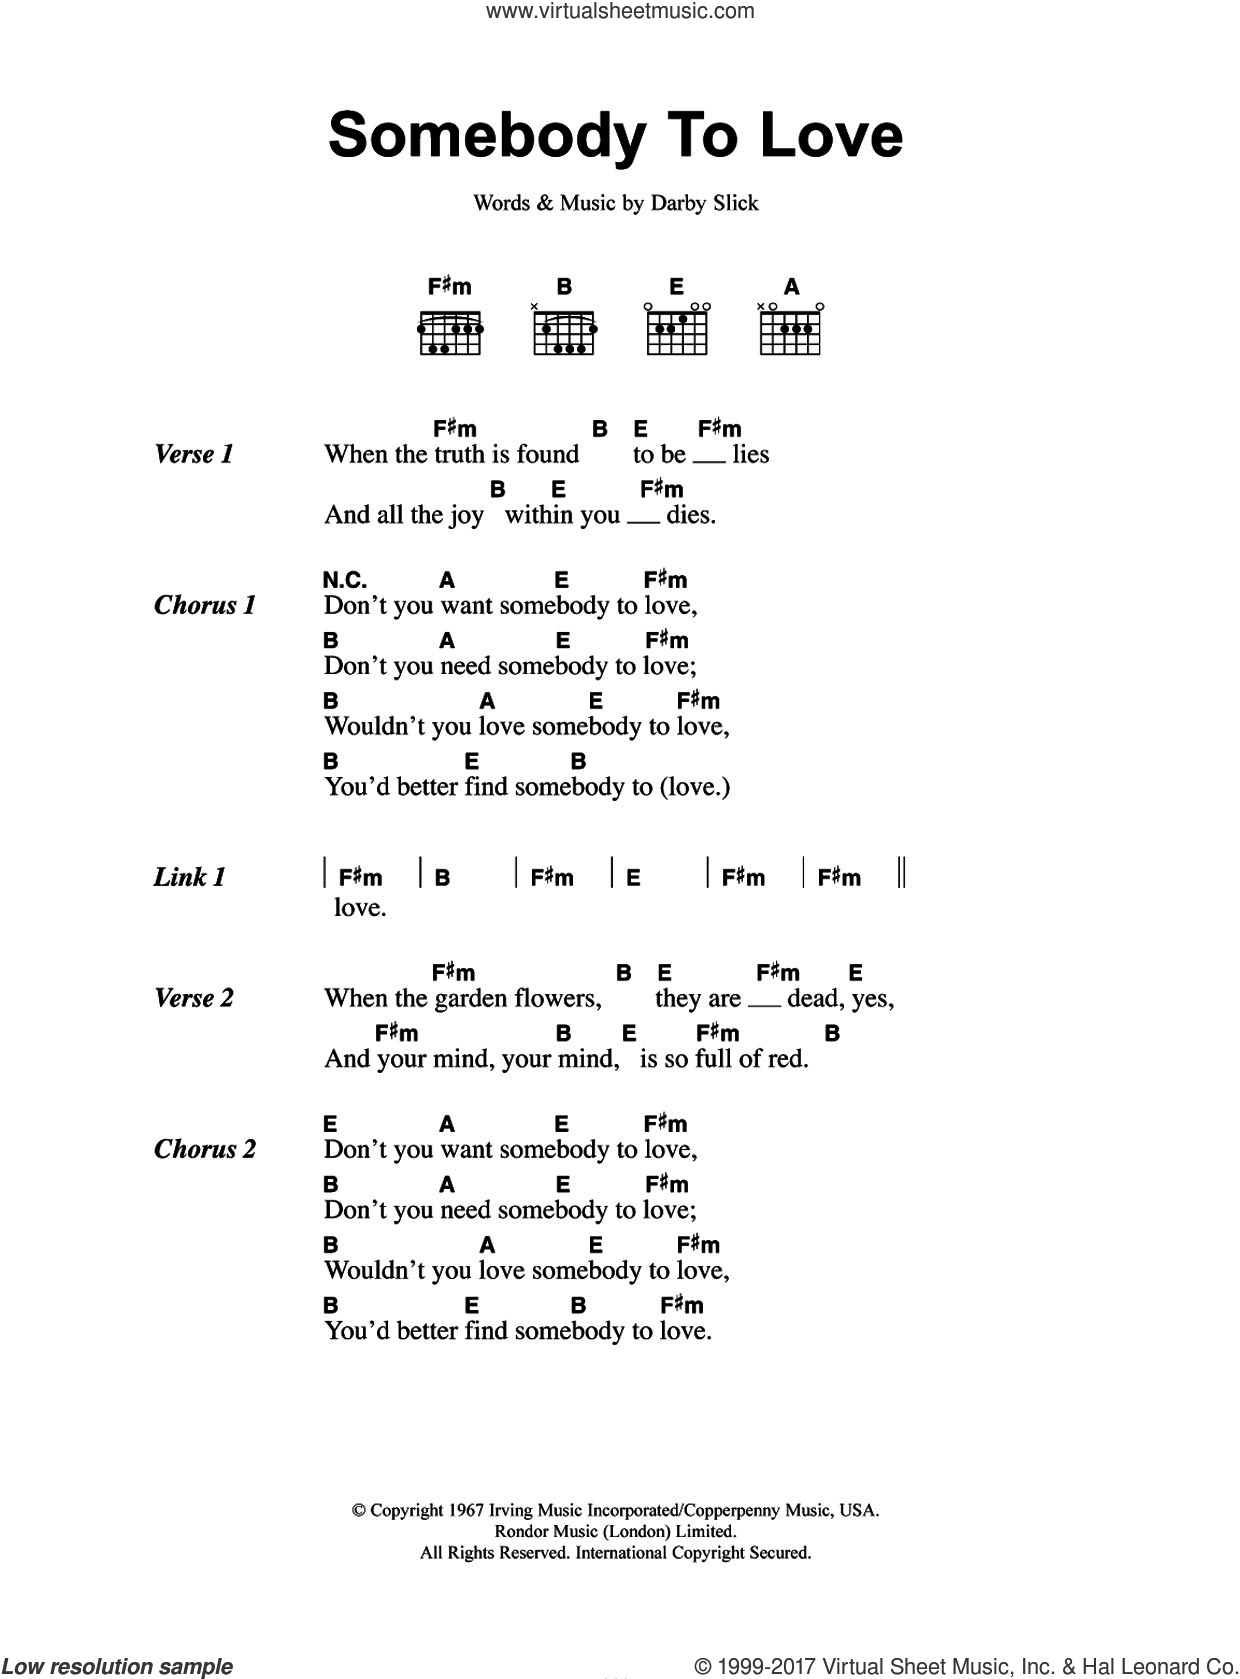 Somebody To Love sheet music for guitar (chords) by Jefferson Airplane and Darby Slick, intermediate skill level